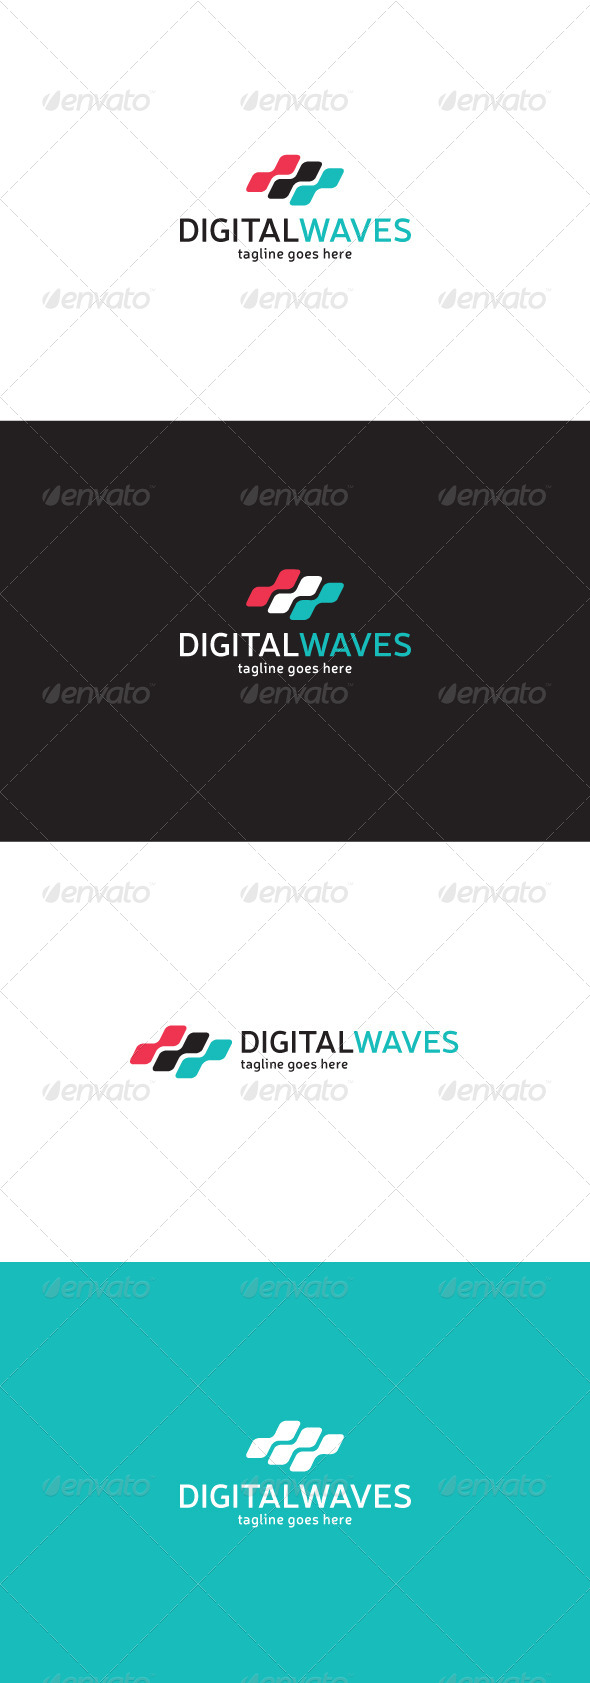 GraphicRiver Digital Waves Logo 7763198